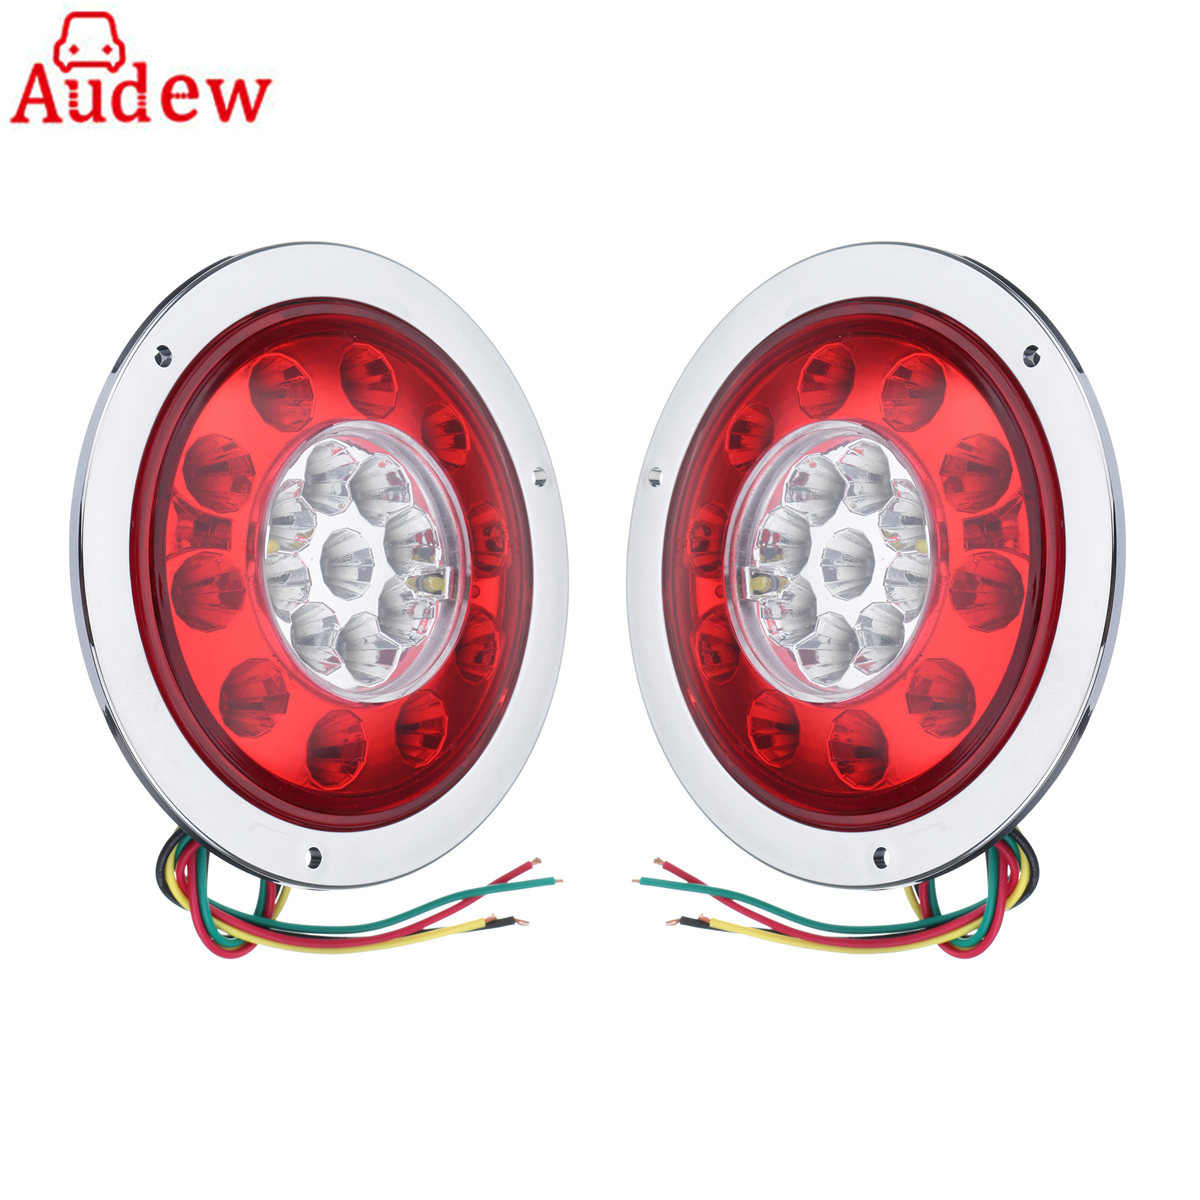 2pcs Yellow&Red Car Trailer Truck 19 LED Side Lamp Tail Brake Light Turn Signal Stop Light Waterproof 2pcs 20 led car truck red amber white led trailer waterproof tail lights turn signal brake light stop rear lamp dc 12v cy798 cn